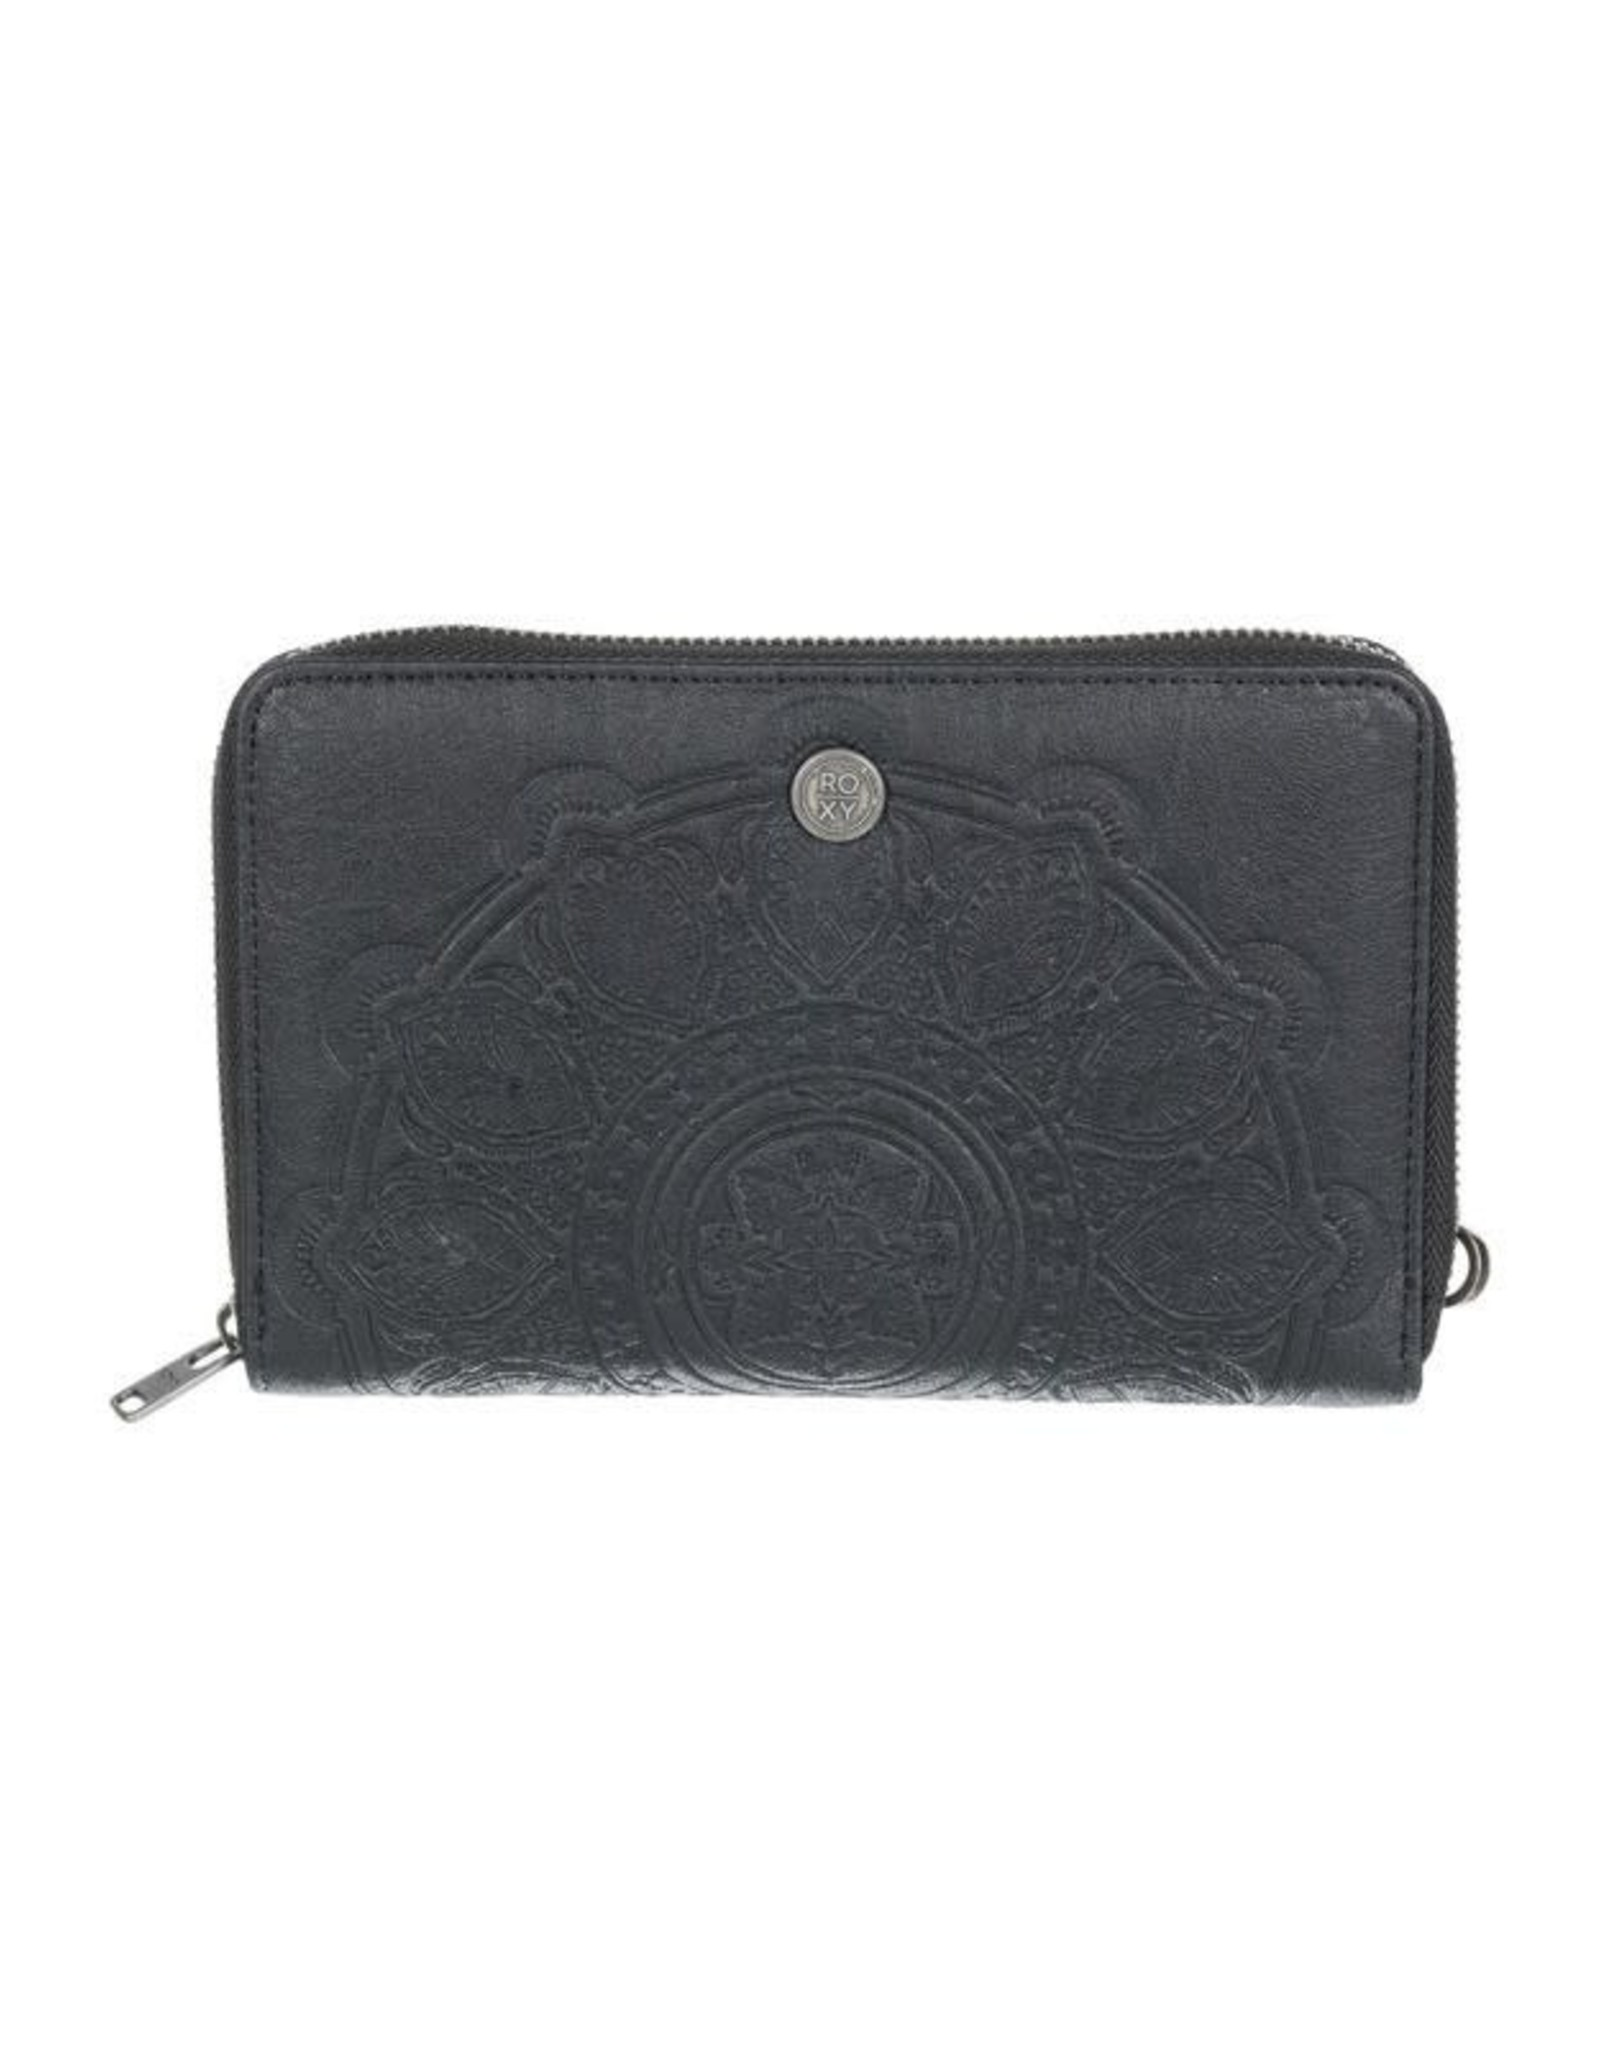 Roxy Roxy - Portefeuille femme back in brooklyn anthracite